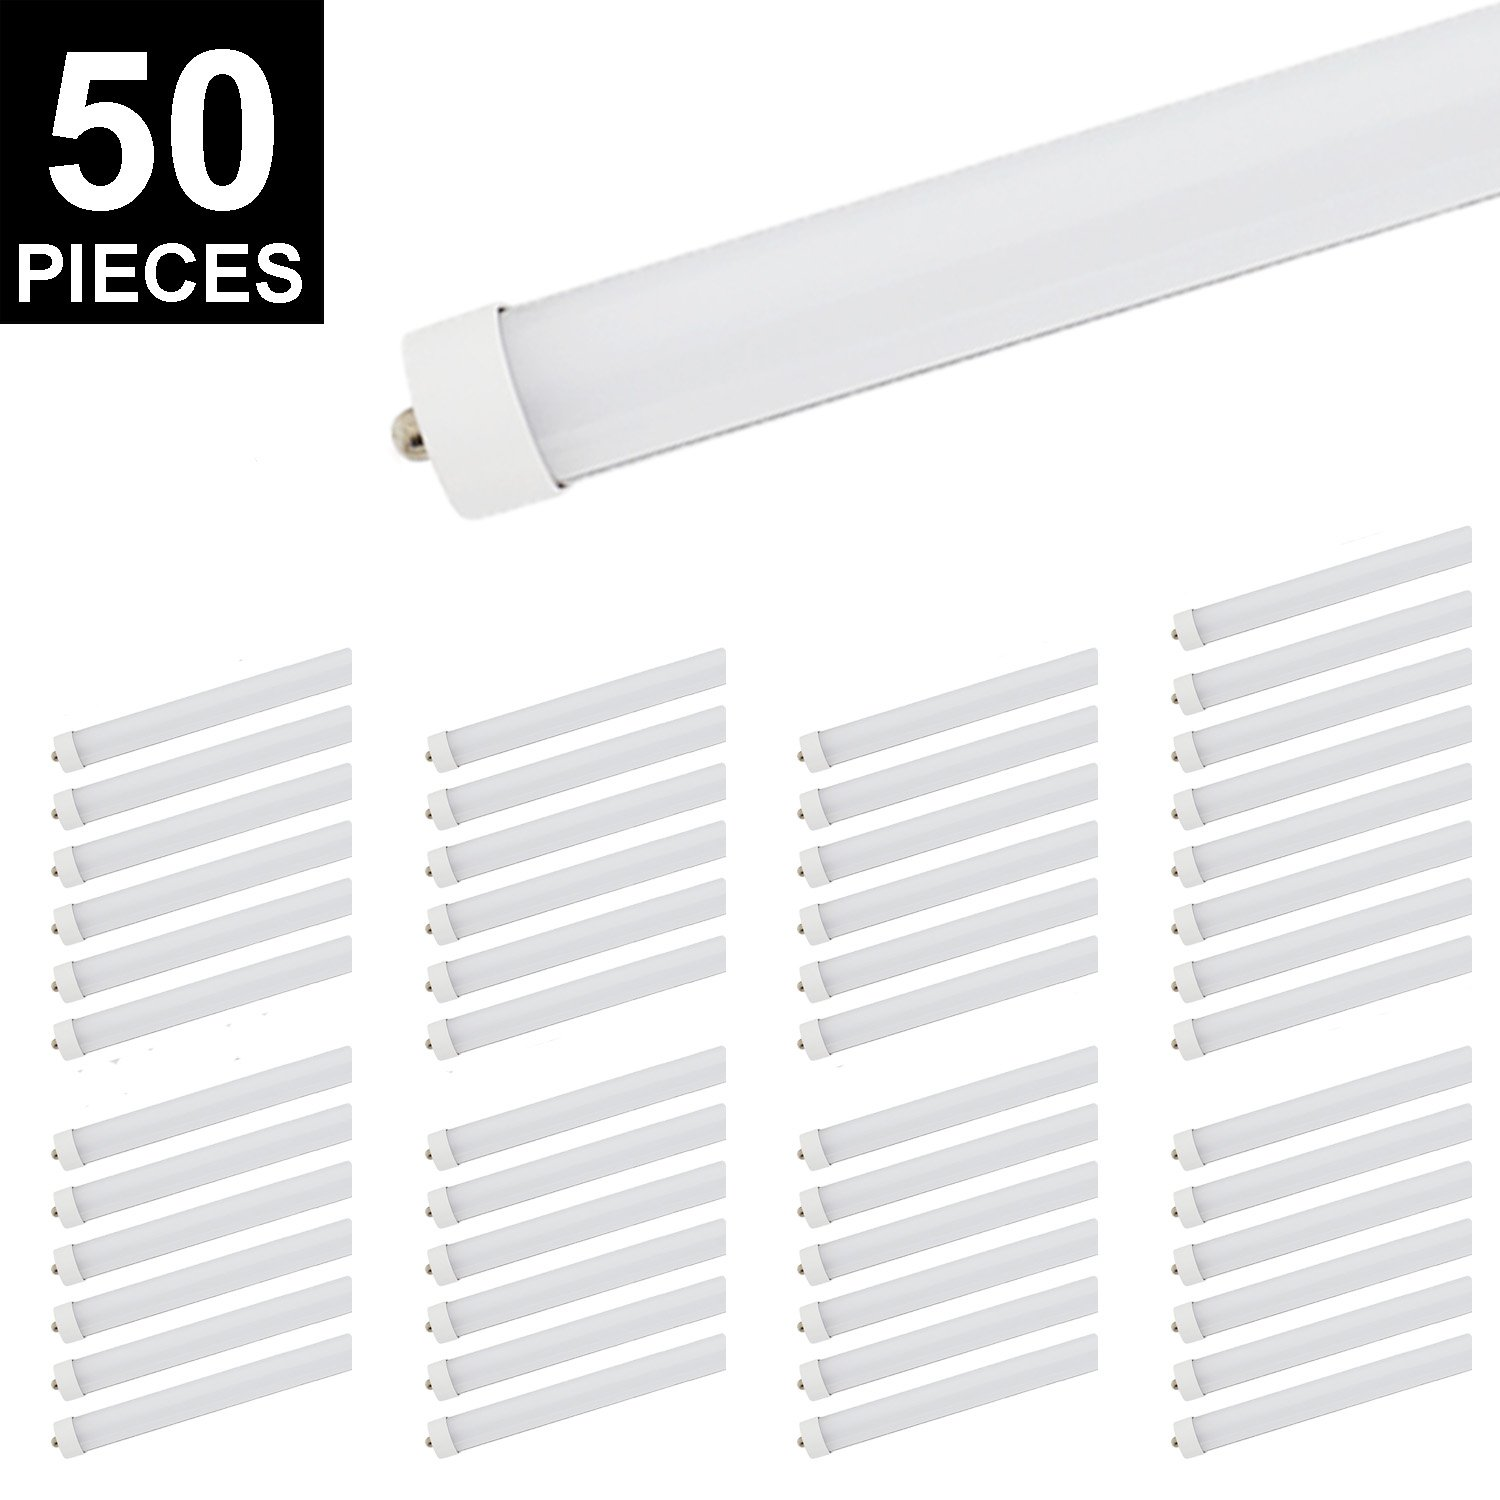 CNSUNWAY LIGHTING 8ft LED Tube, 96'' 45Watt T8 FA8 Single Pin LED Bulbs With Frosted Cover, 4800LM Super Bright 6000K Cool White(50 Pieces) by CNSUNWAY LIGHTING